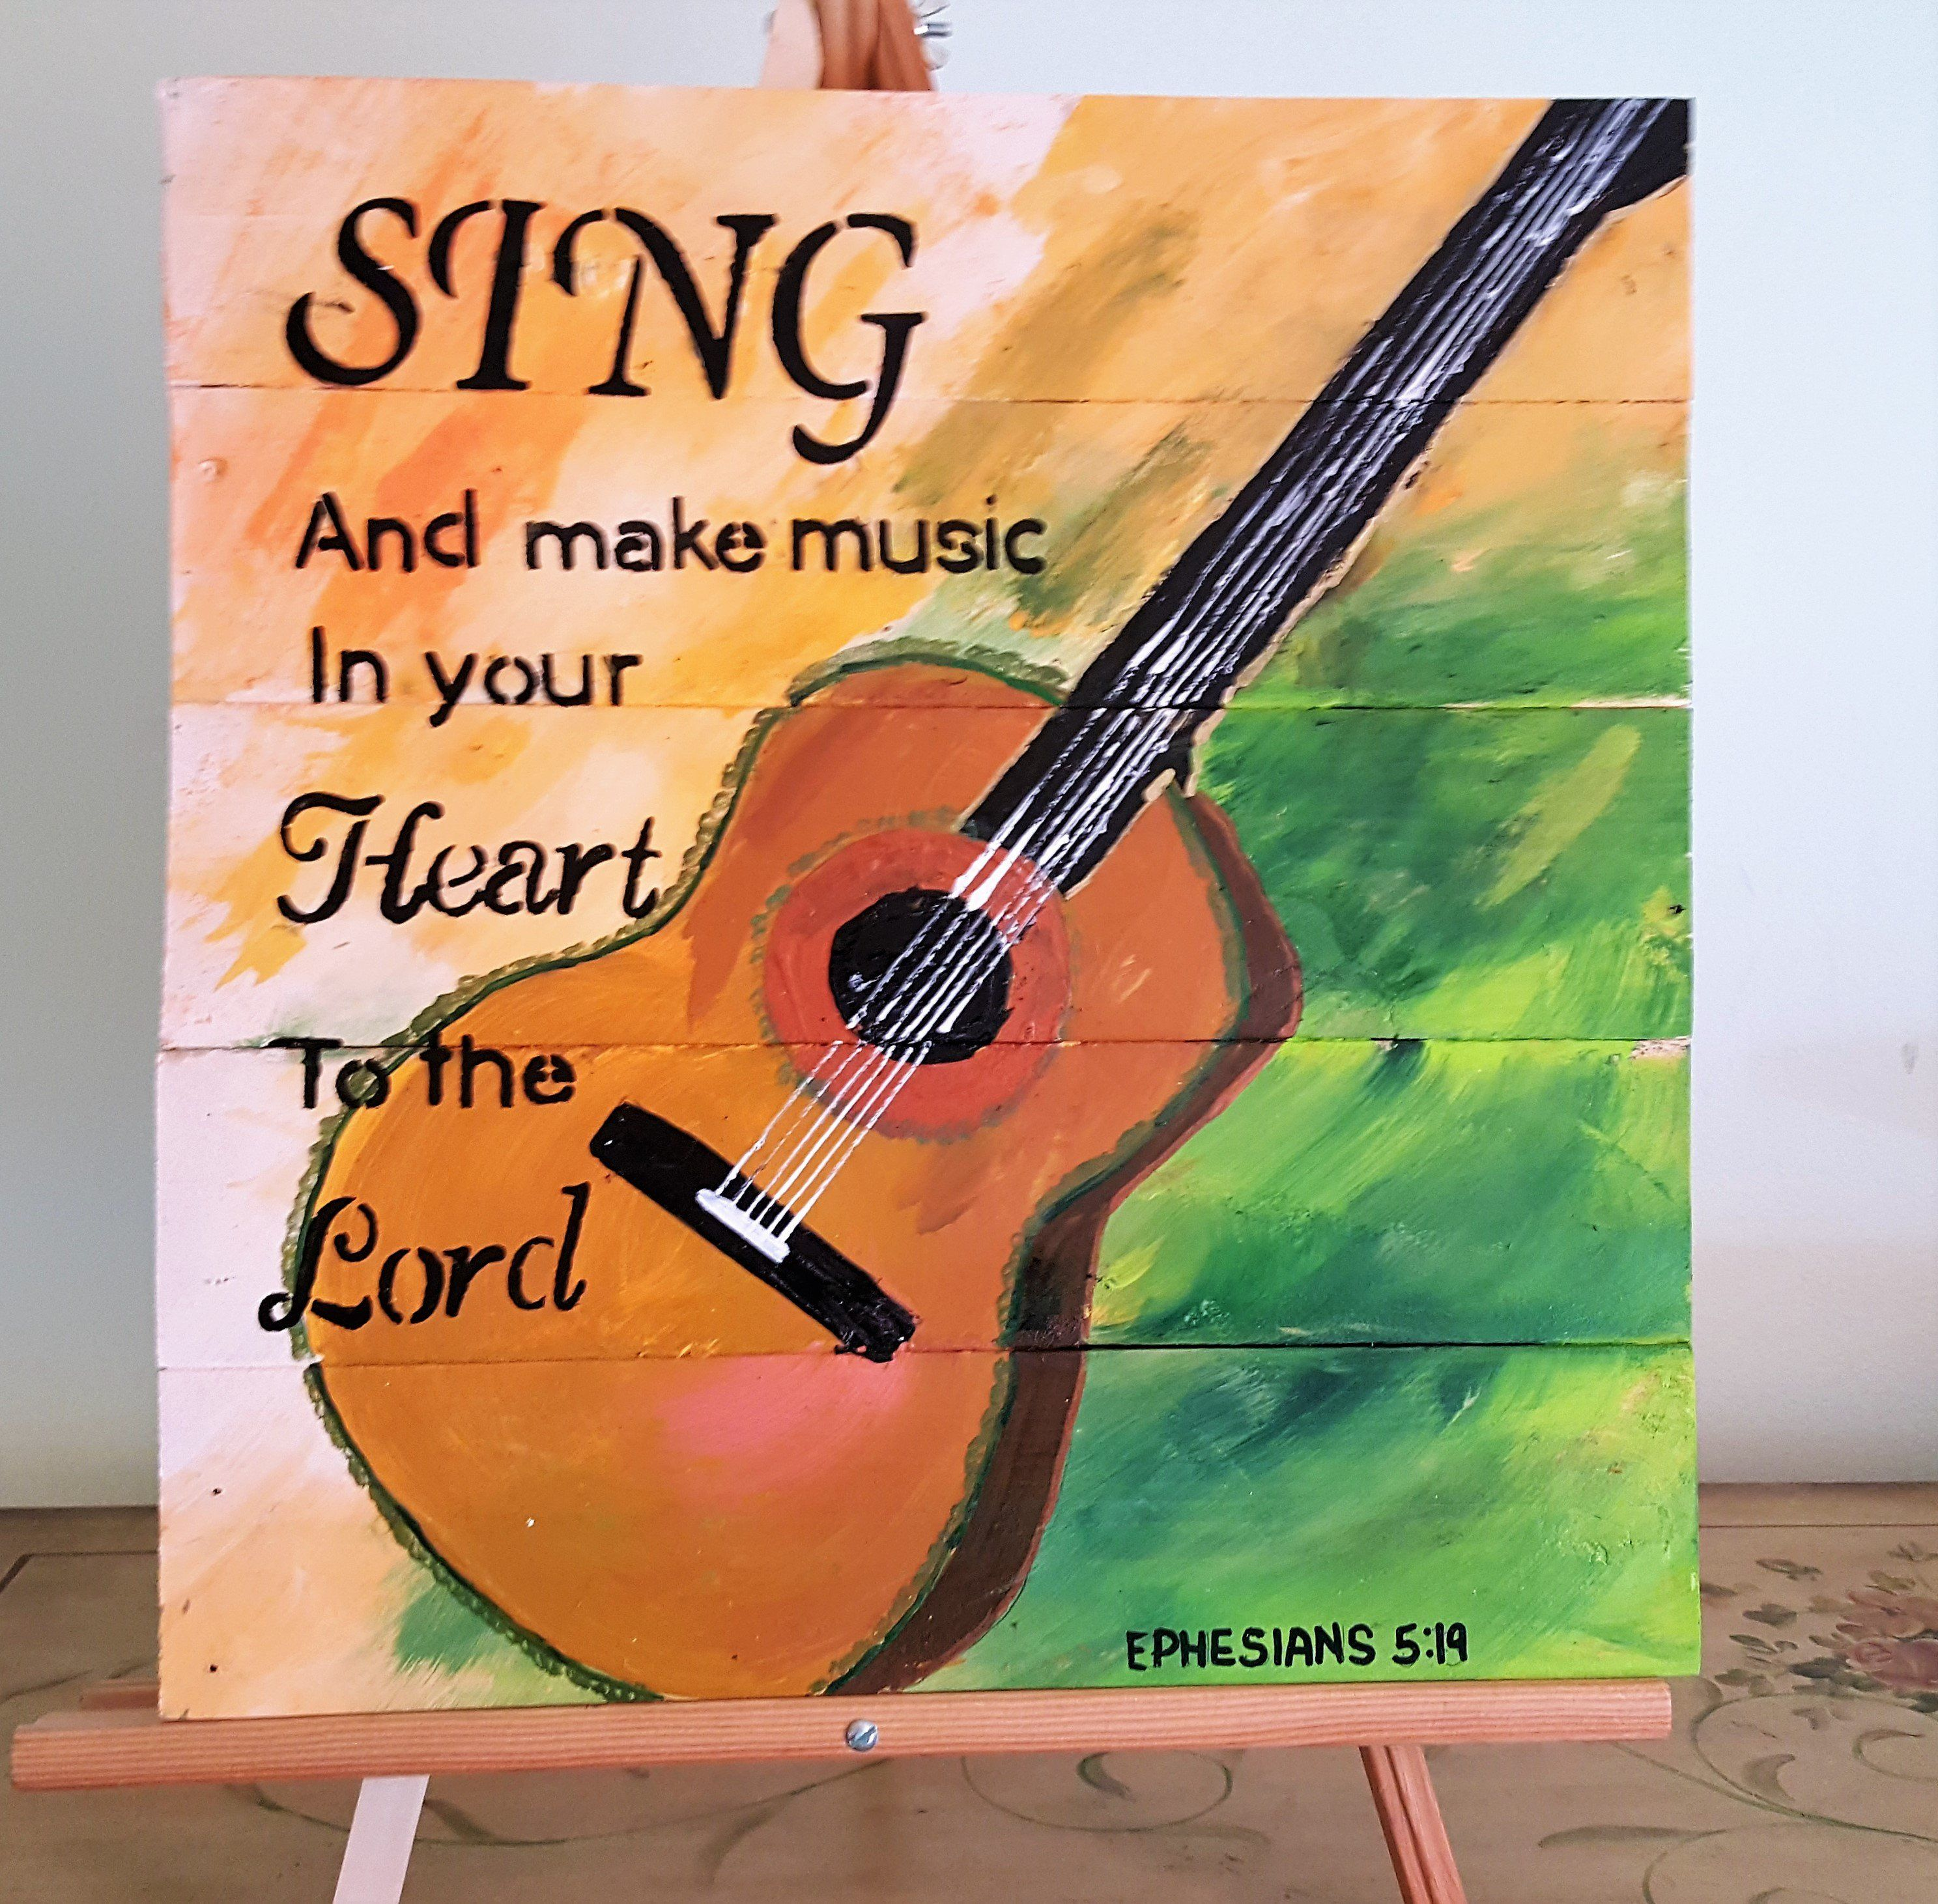 Sing and make music your heart to the Lord Ephesians 5:19